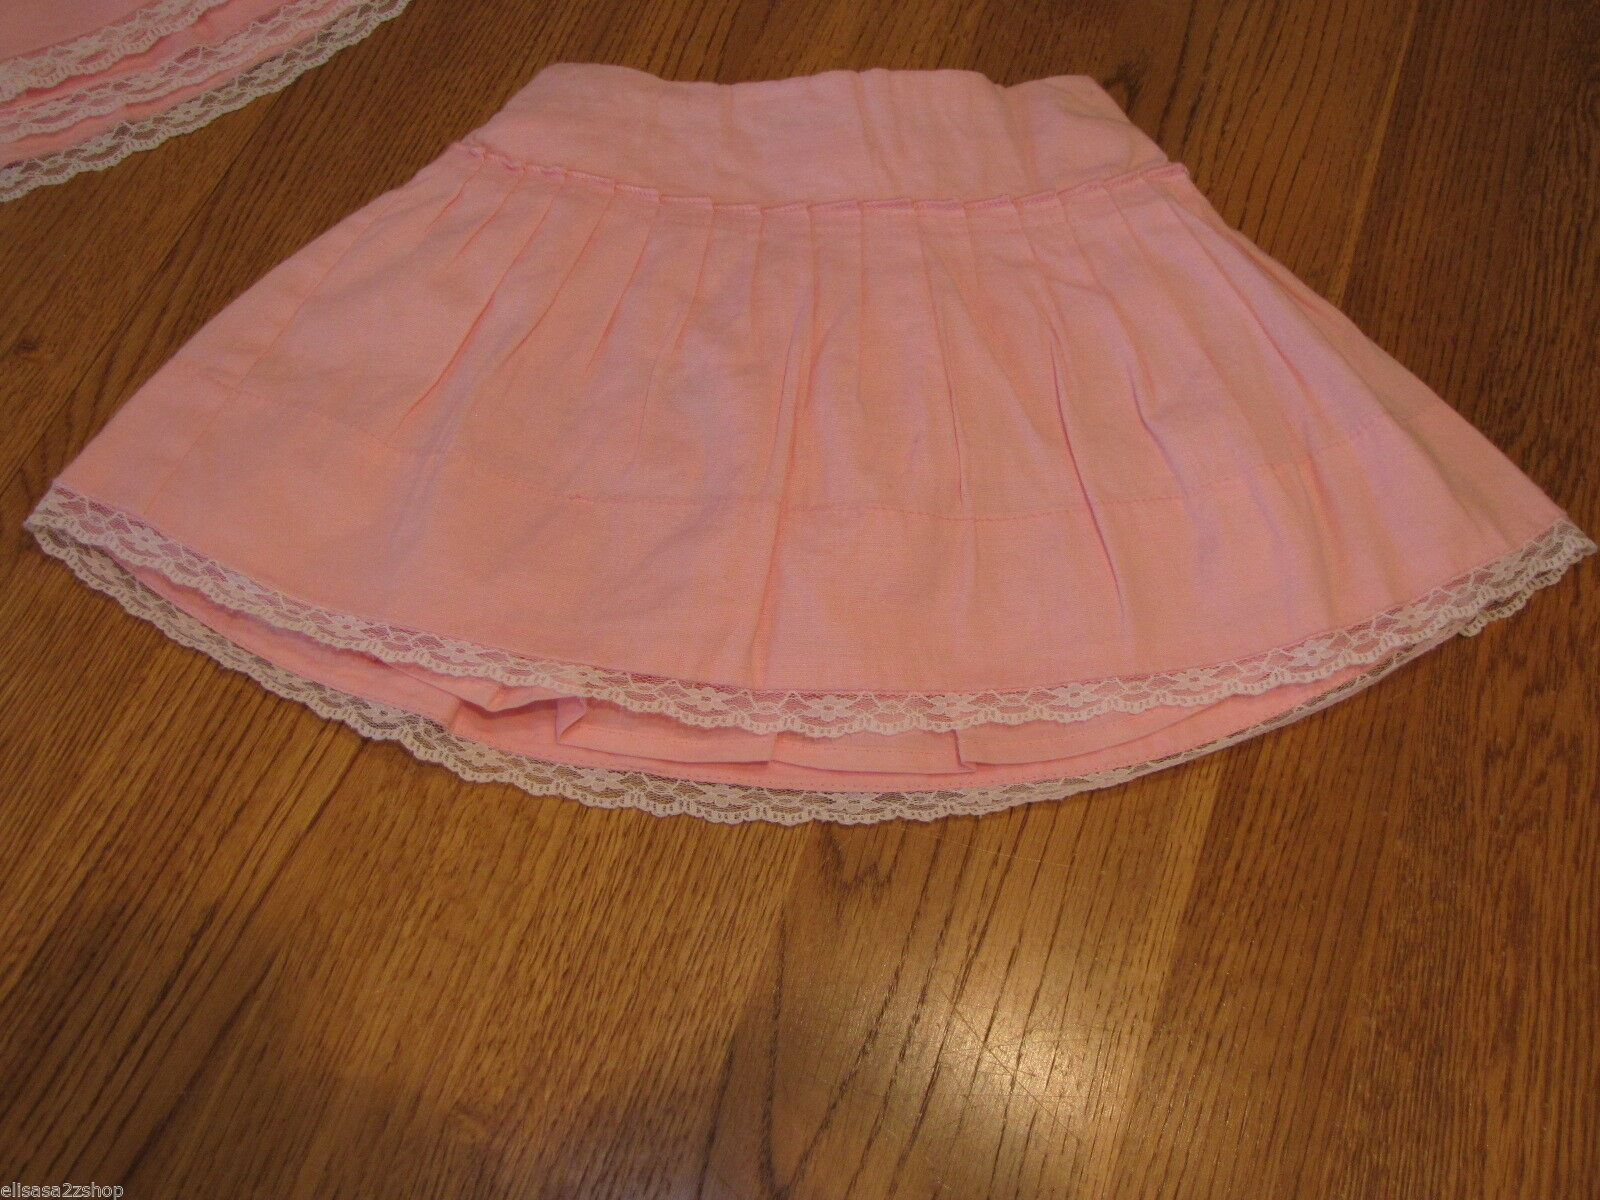 Primary image for The Children's Place girls skort 24 months Pink NWT skirt 24 M NEW ^^